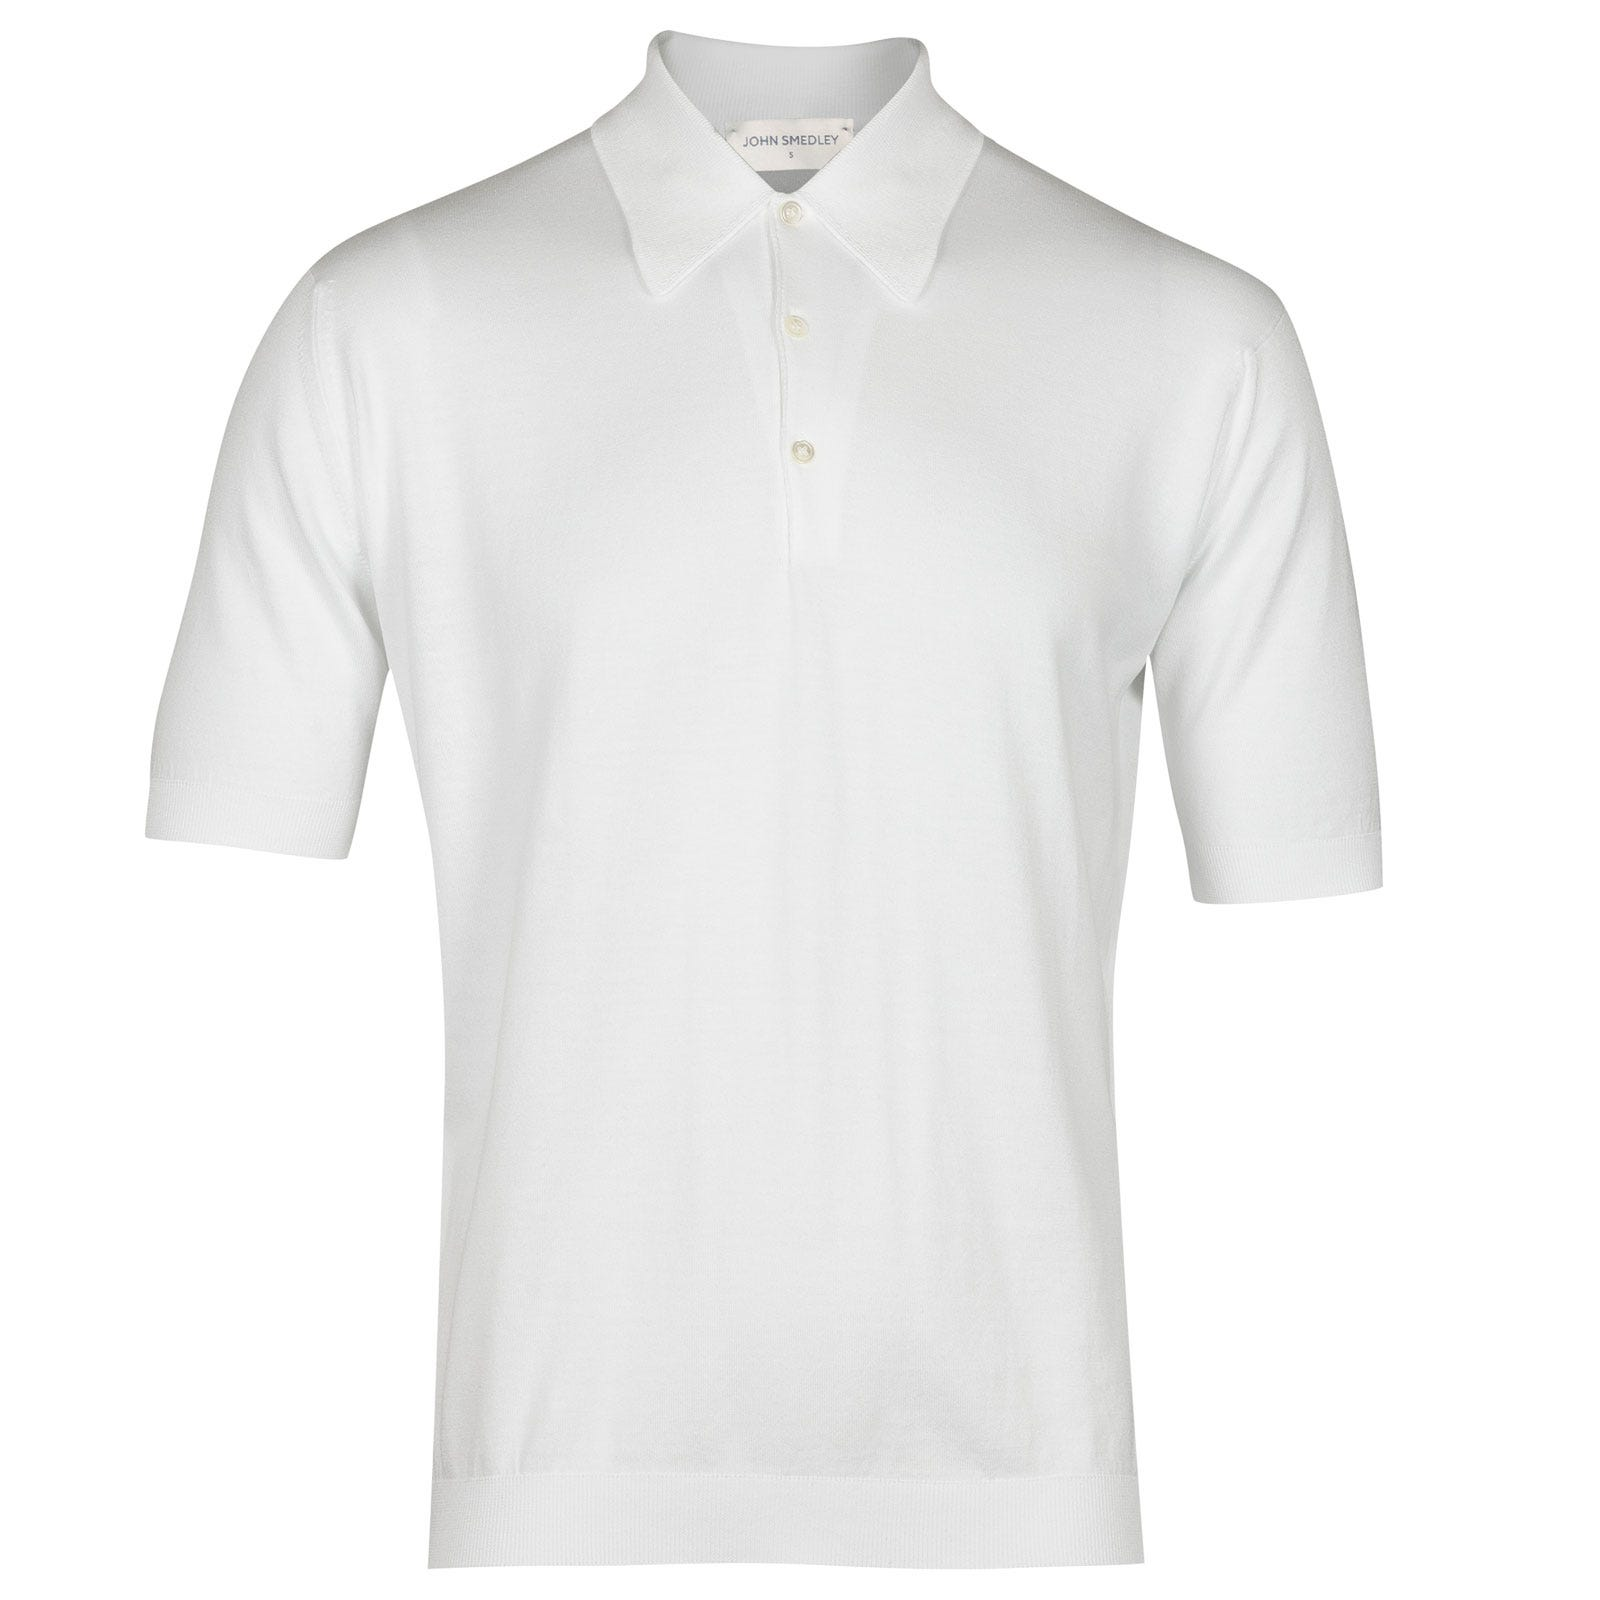 John Smedley Isis Sea Island Cotton Shirt in White-M